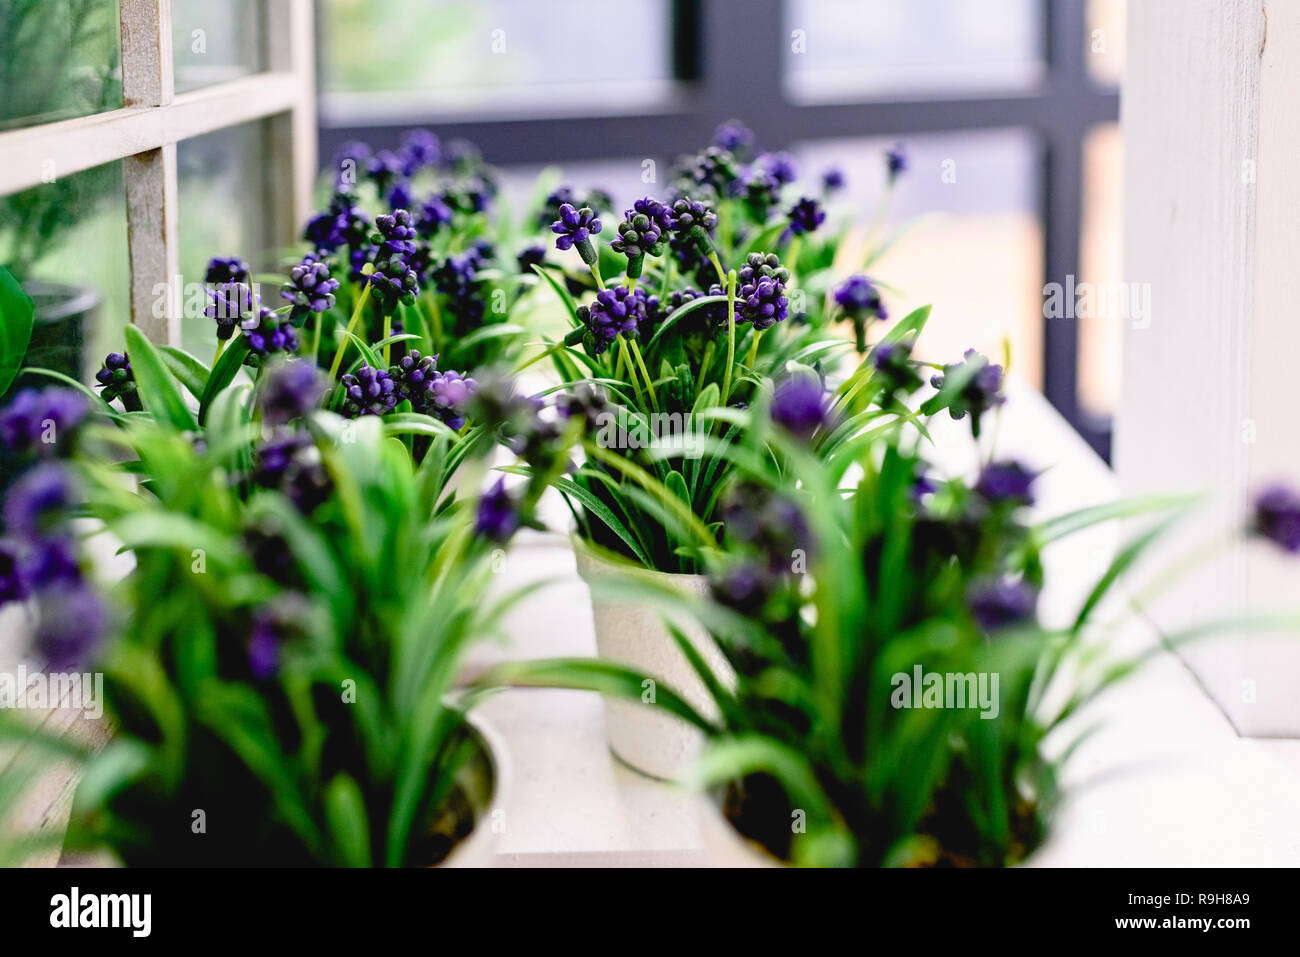 Flowers of plastic of intense colors to decorate the home. - Stock Image